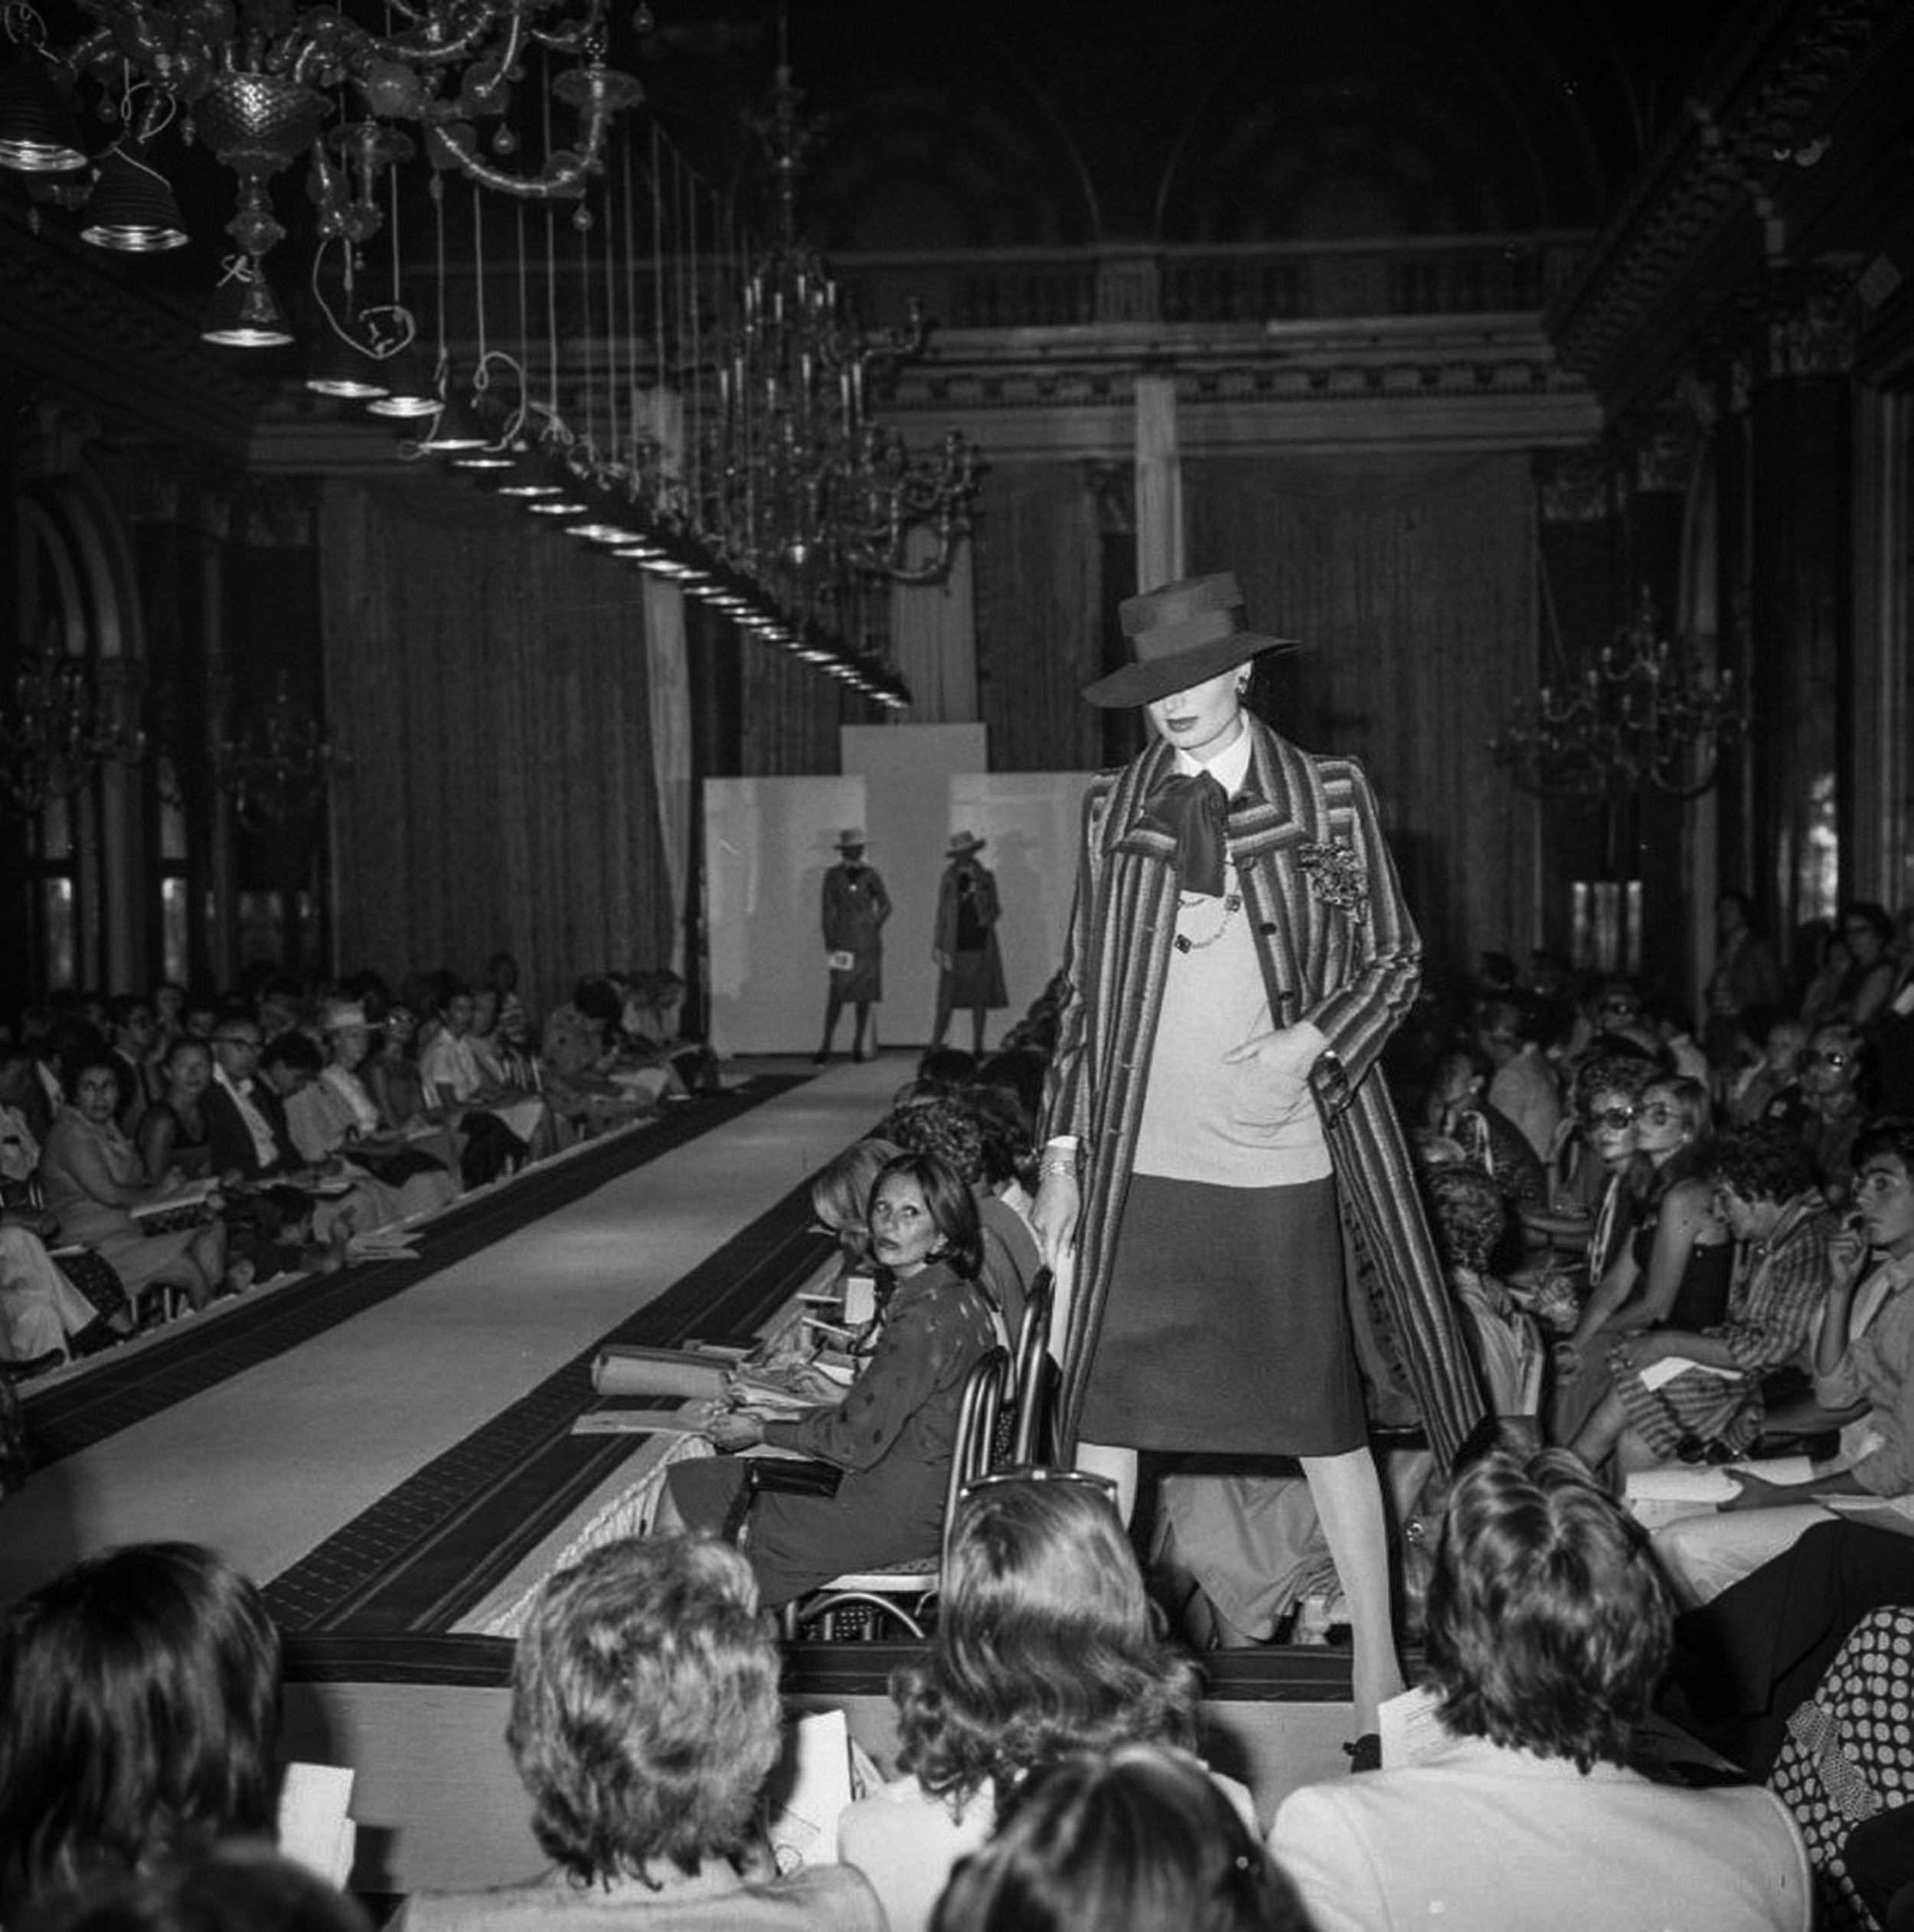 - In 1962, new emerging talented fashion designers, such as Valentino, Nino Cerruti, Ferré, Sarli, and Mila Schon, organized their first important fashion show at The Grand Hotel in the amazing Ritz Ballroom.